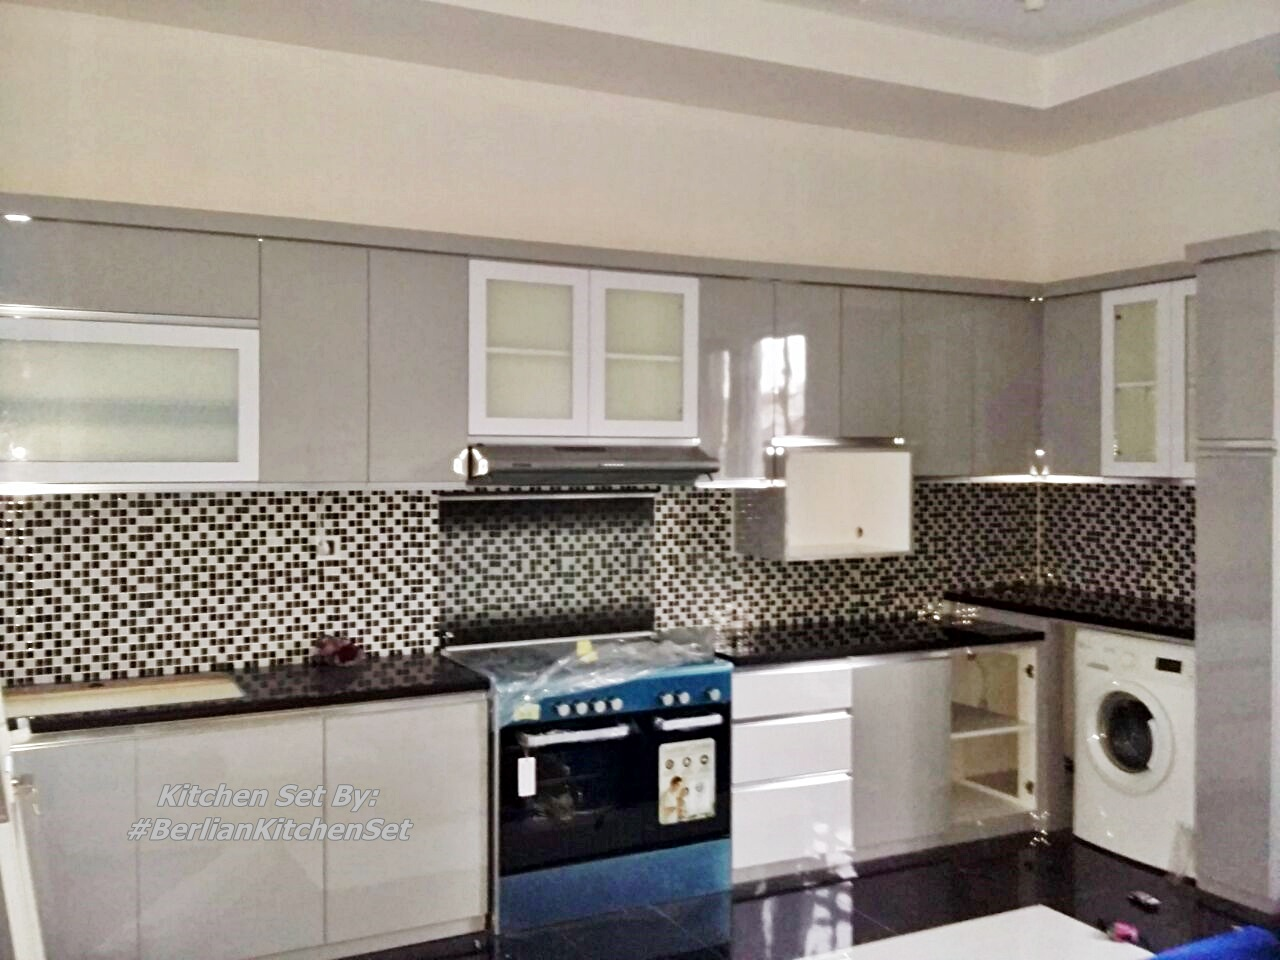 Berlian kitchen set minimalis murah kitchen set putih for Kitchen set warna putih